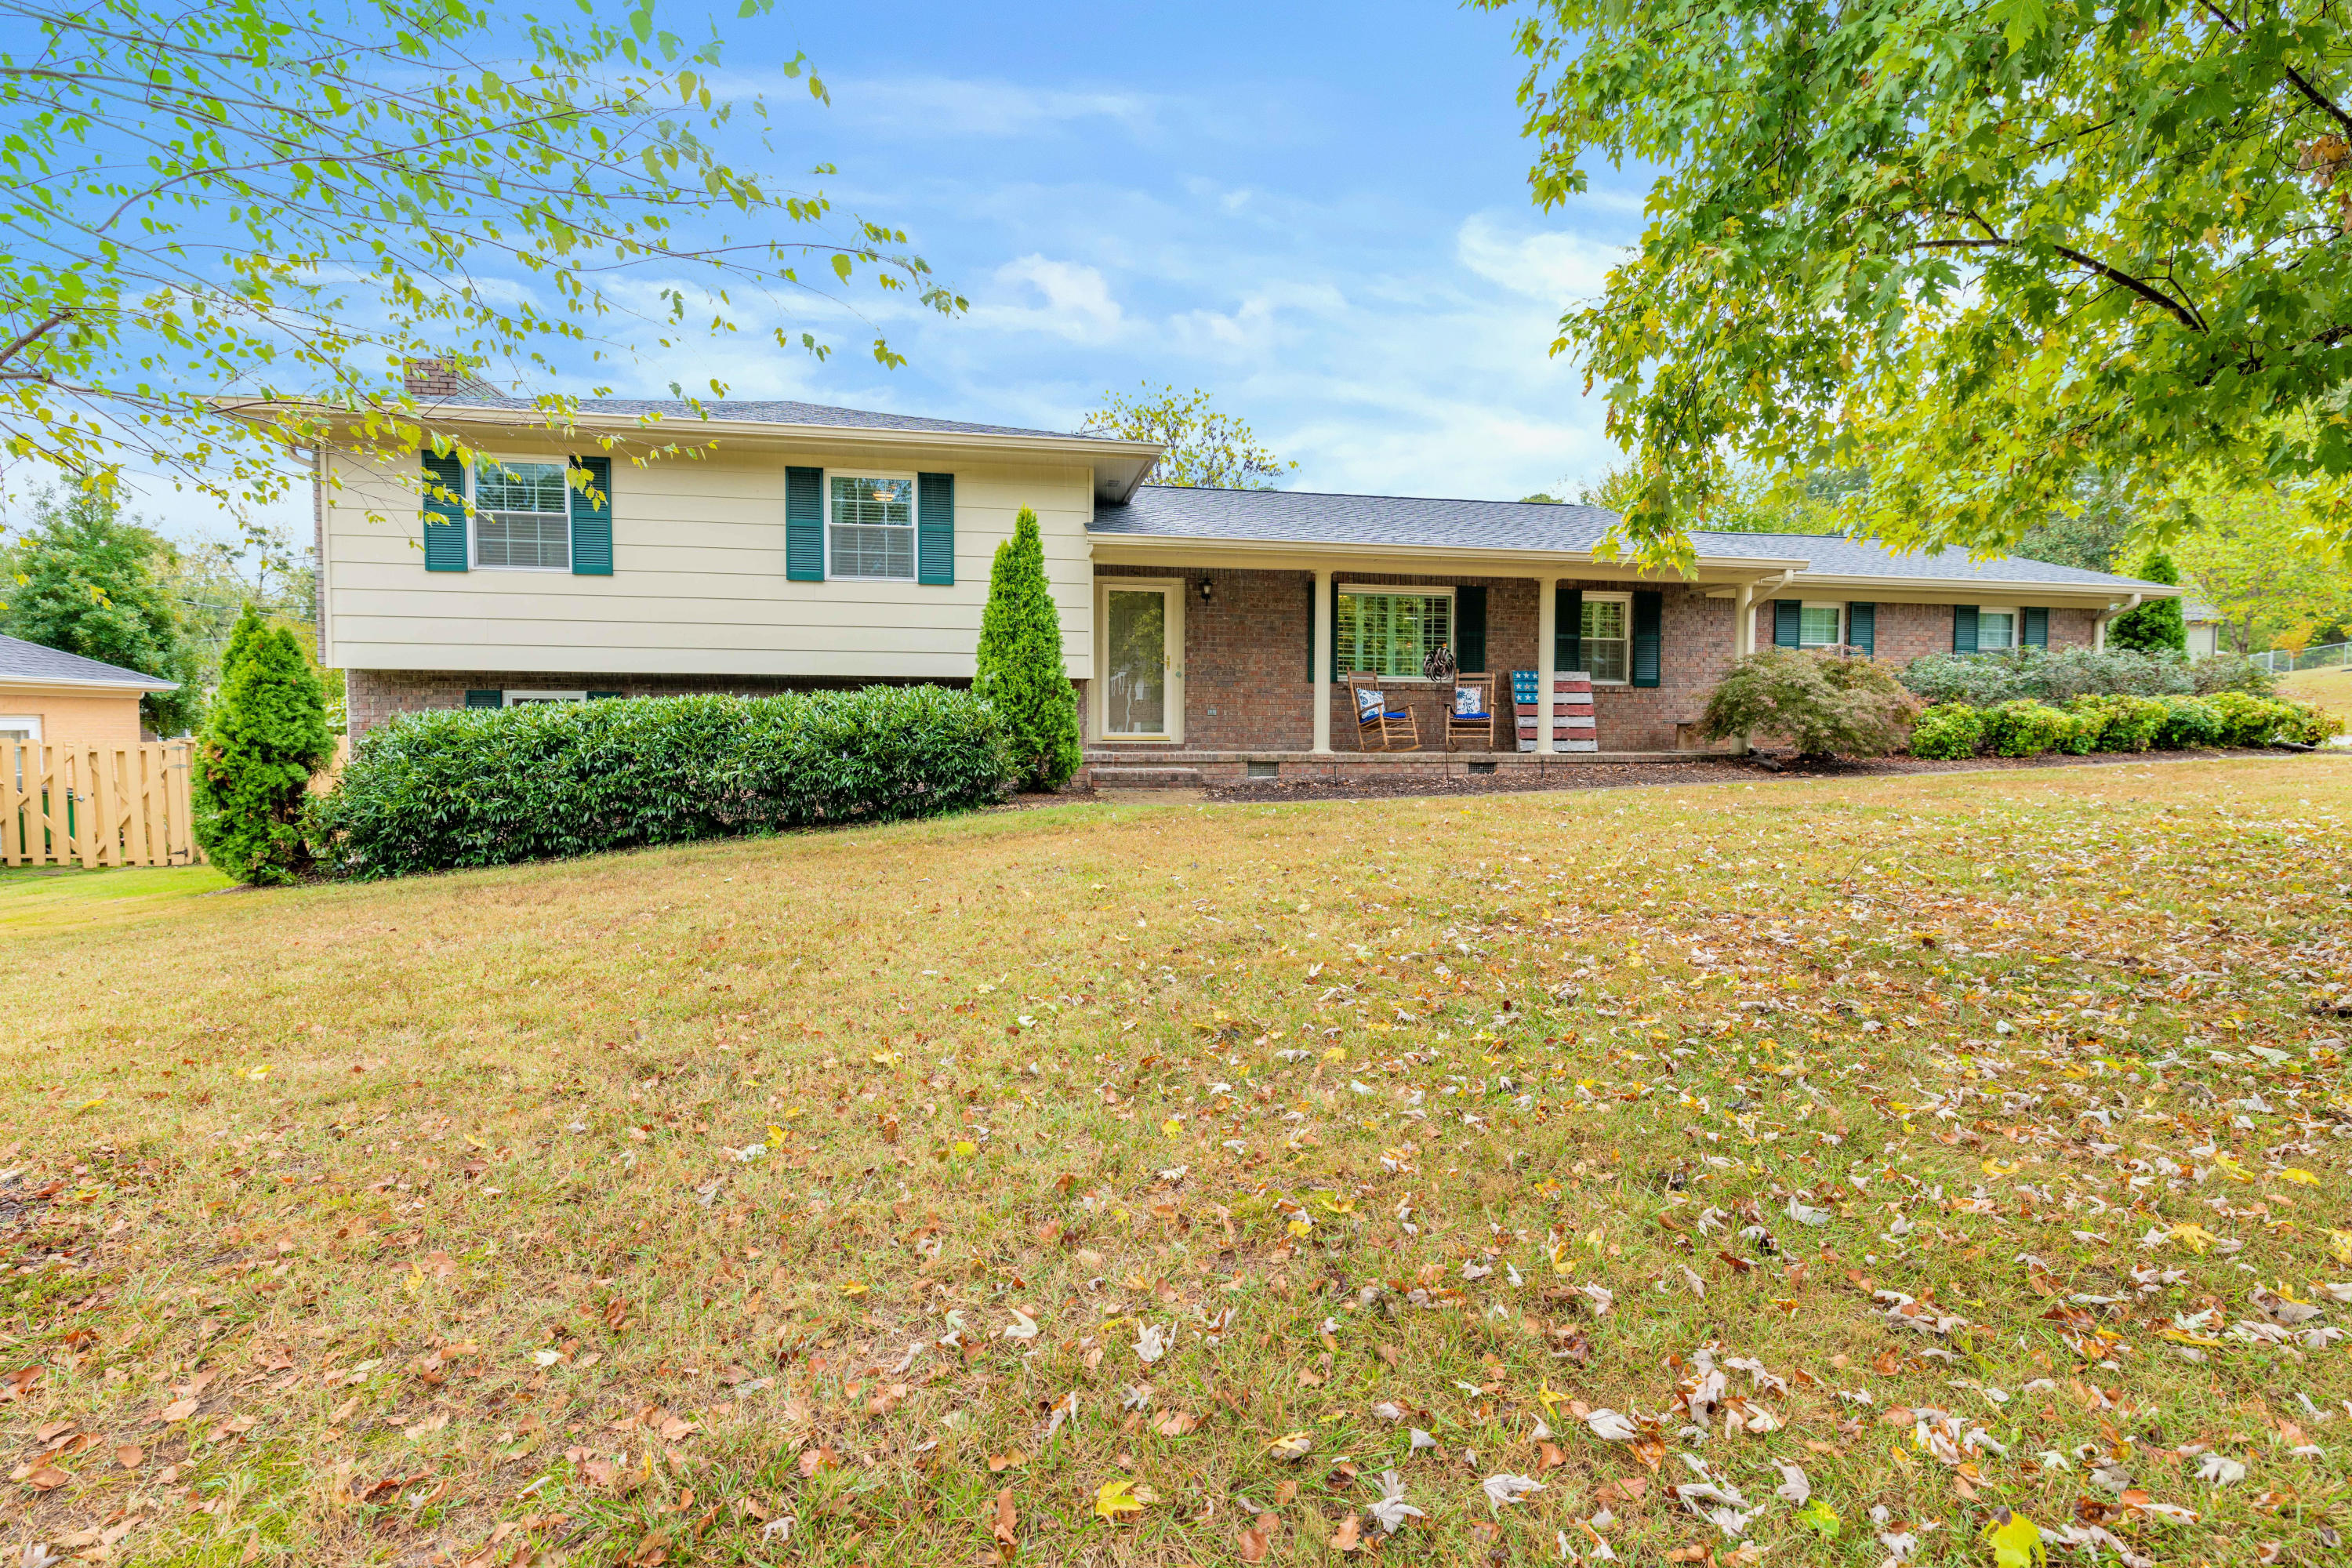 3936 S Mission Oaks  Dr 37412 - One of Chattanooga Homes for Sale